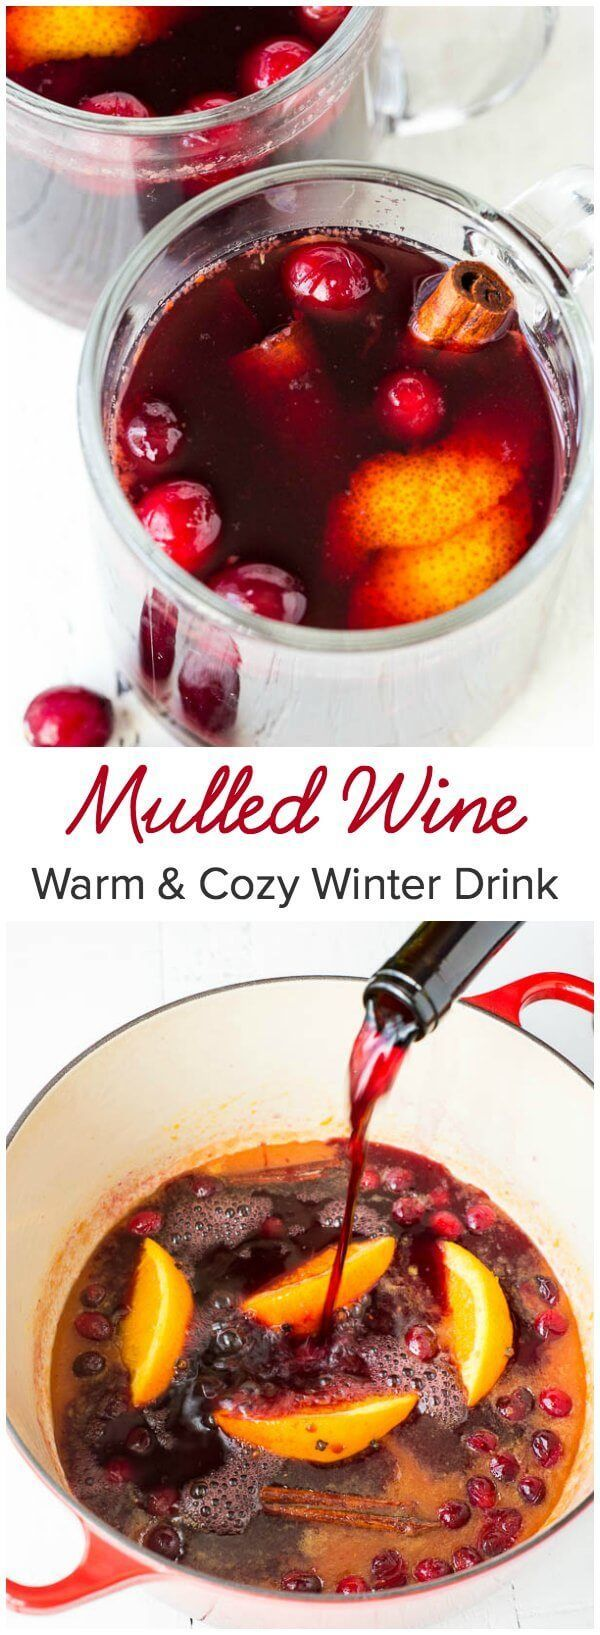 Mulled Wine Perfect Holiday Party Drink Recipe 21st Birthday Wine Recipes Winter Drinks Food